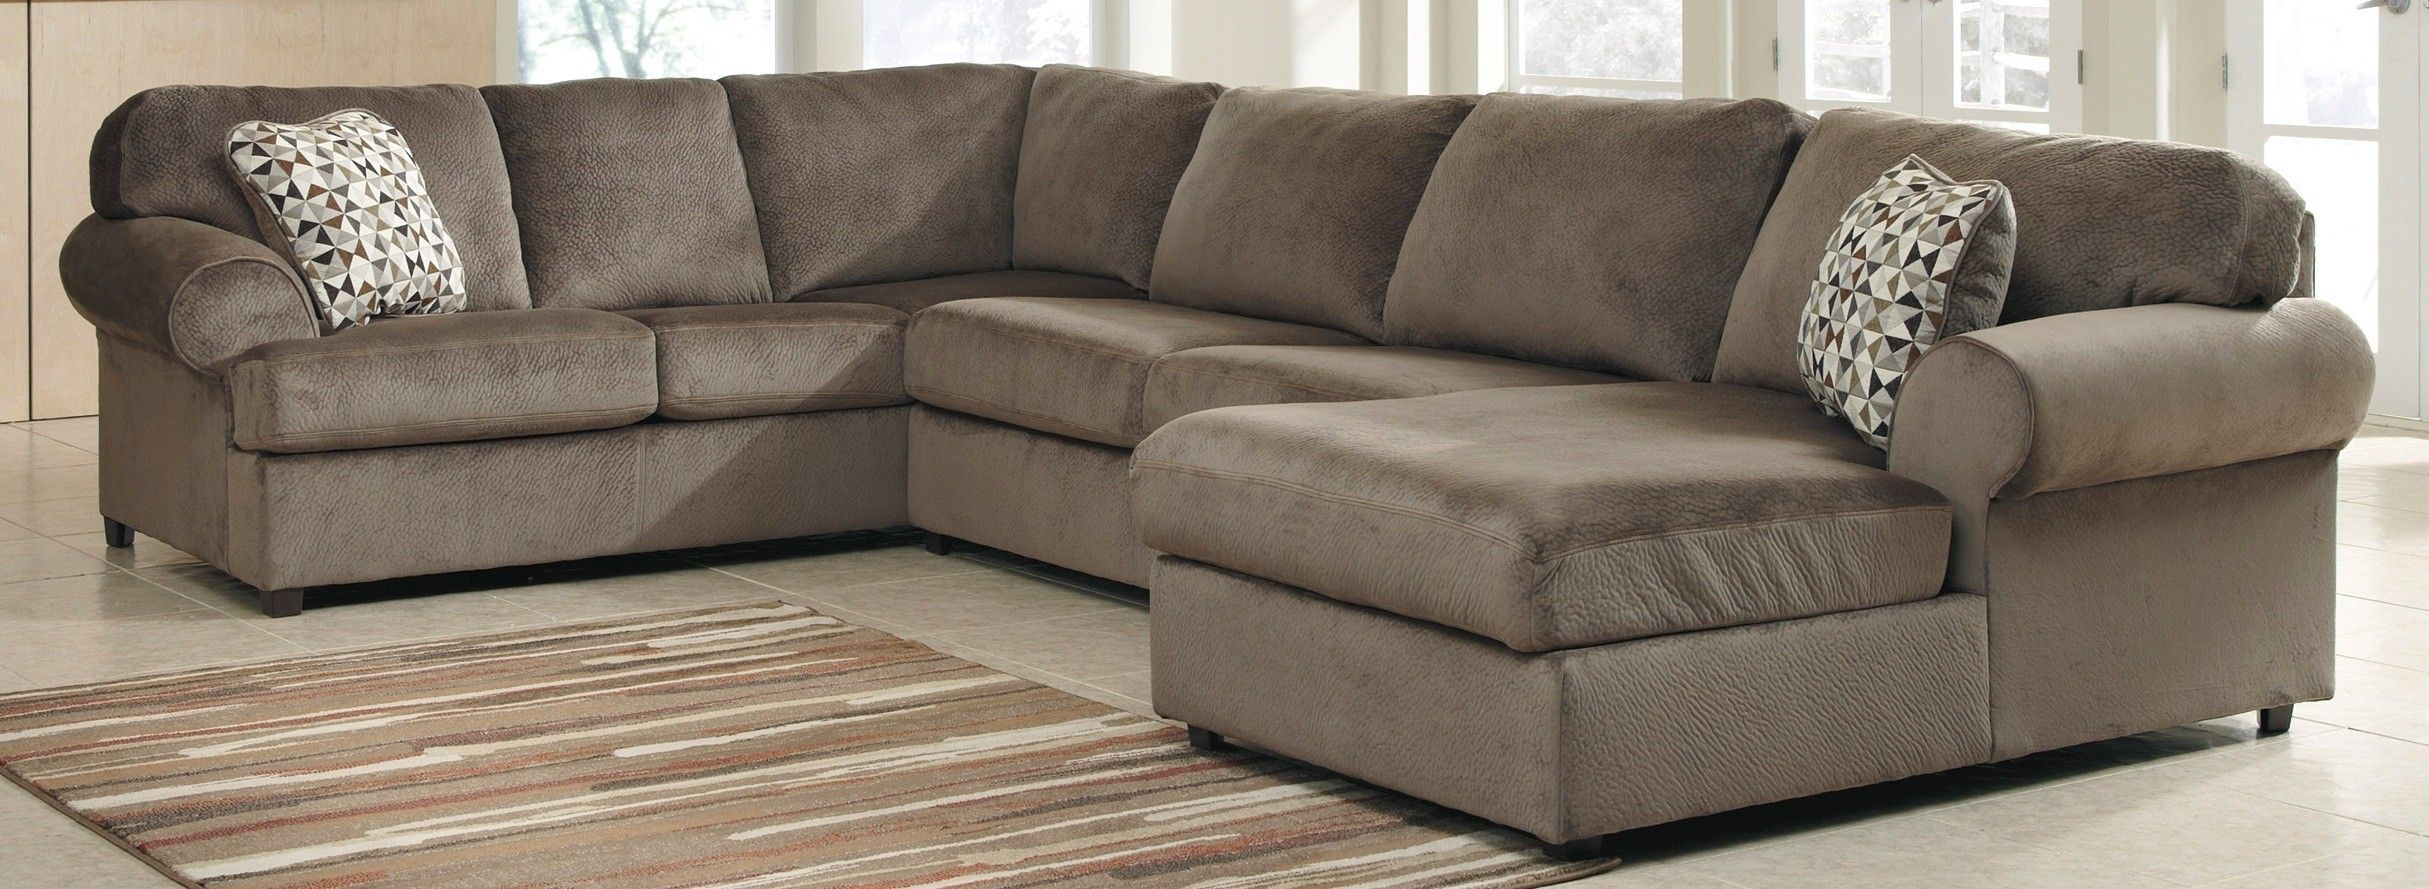 Ashley Furniture 3980266 3980234 3980217 Jessa Place Dune Raf With Sectional Reviews 31944